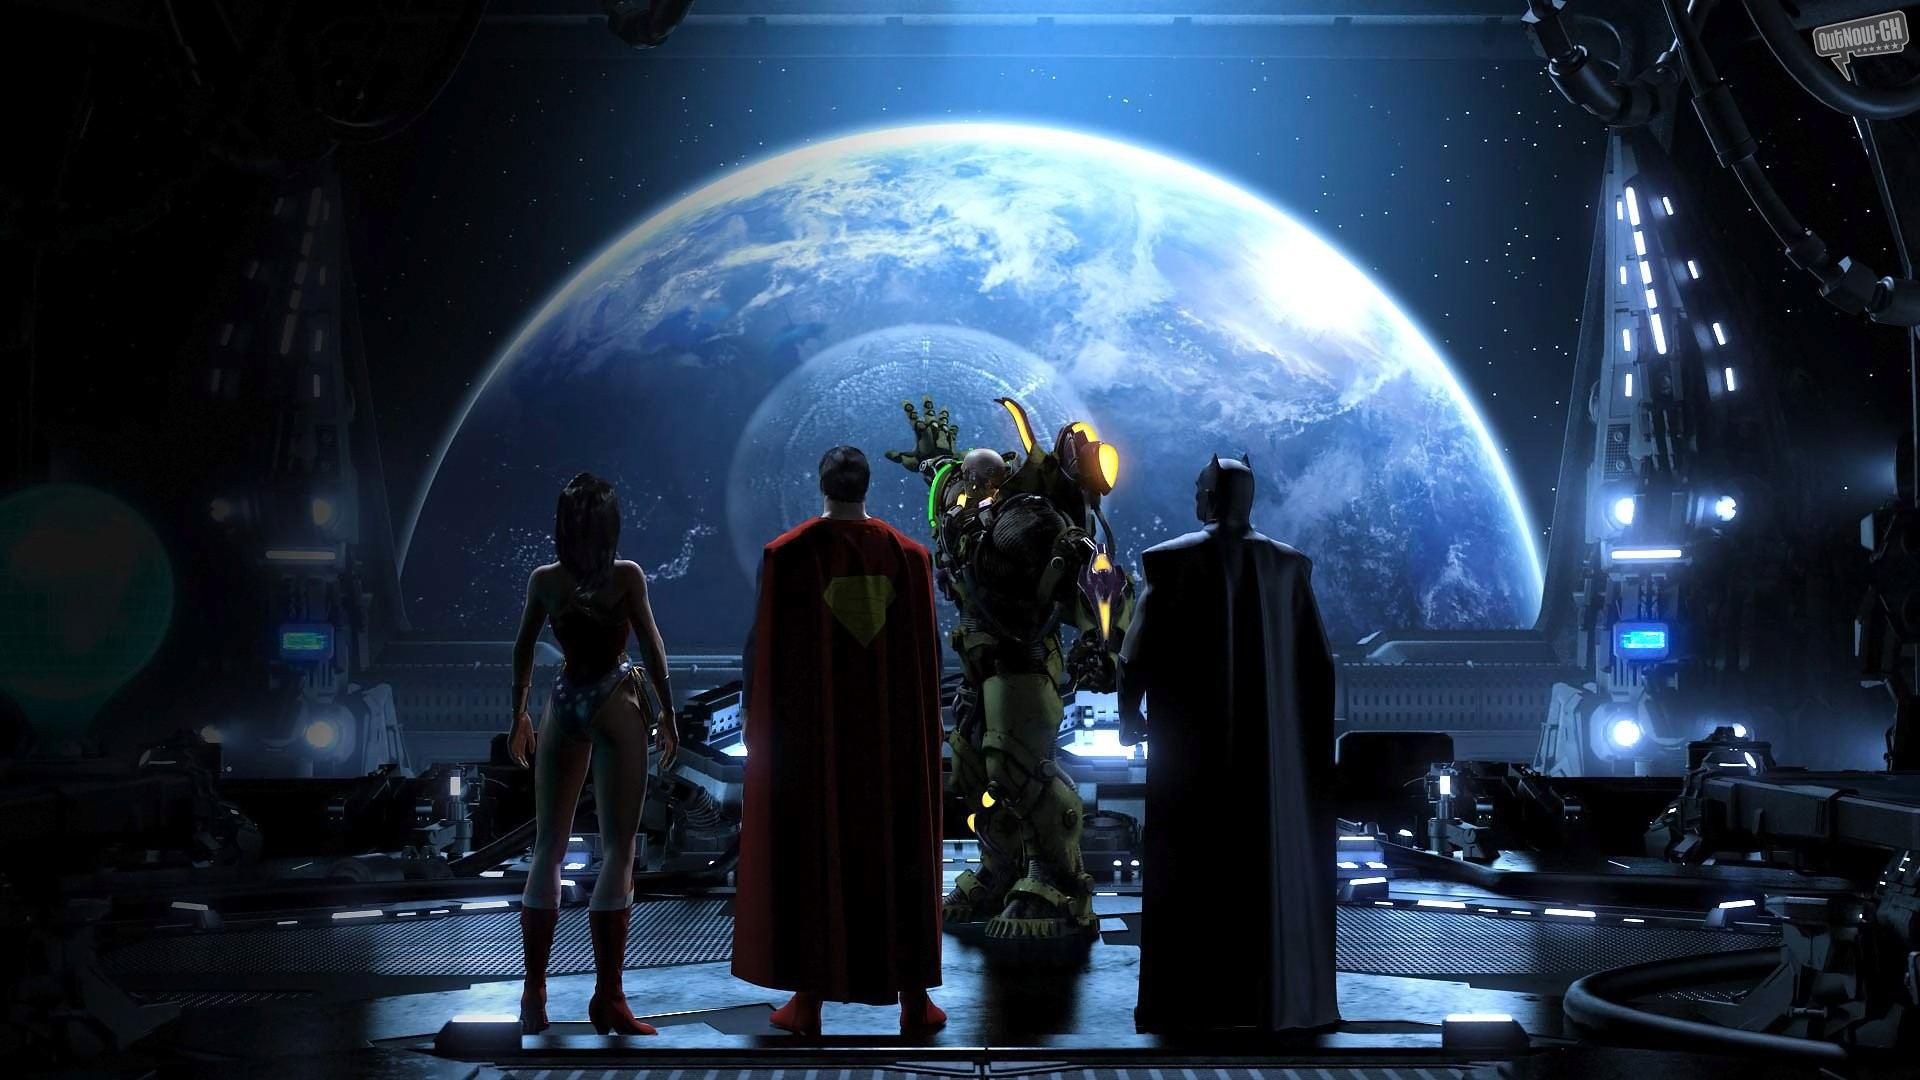 Hd wallpaper justice league - Justice League Of America Hd Desktop Wallpaper Images And Photos